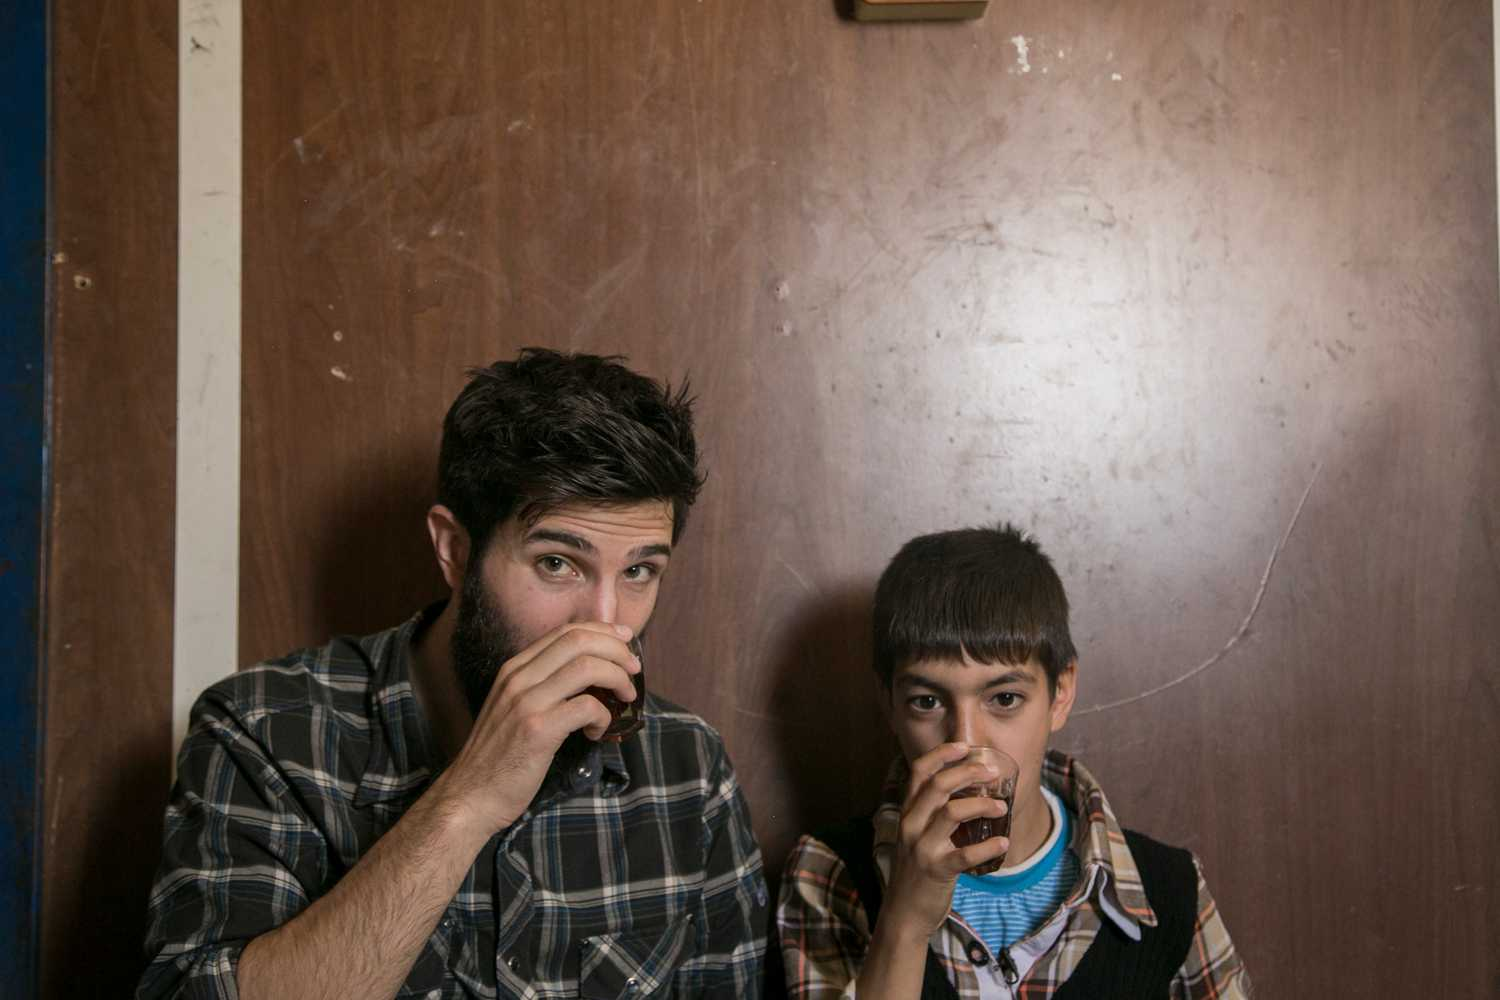 Zach Ingrasci, co-director of Salam Neighbor, shares tea with Raouf, one of the subjects of the documentary. (Image via Wikimedia Commons)